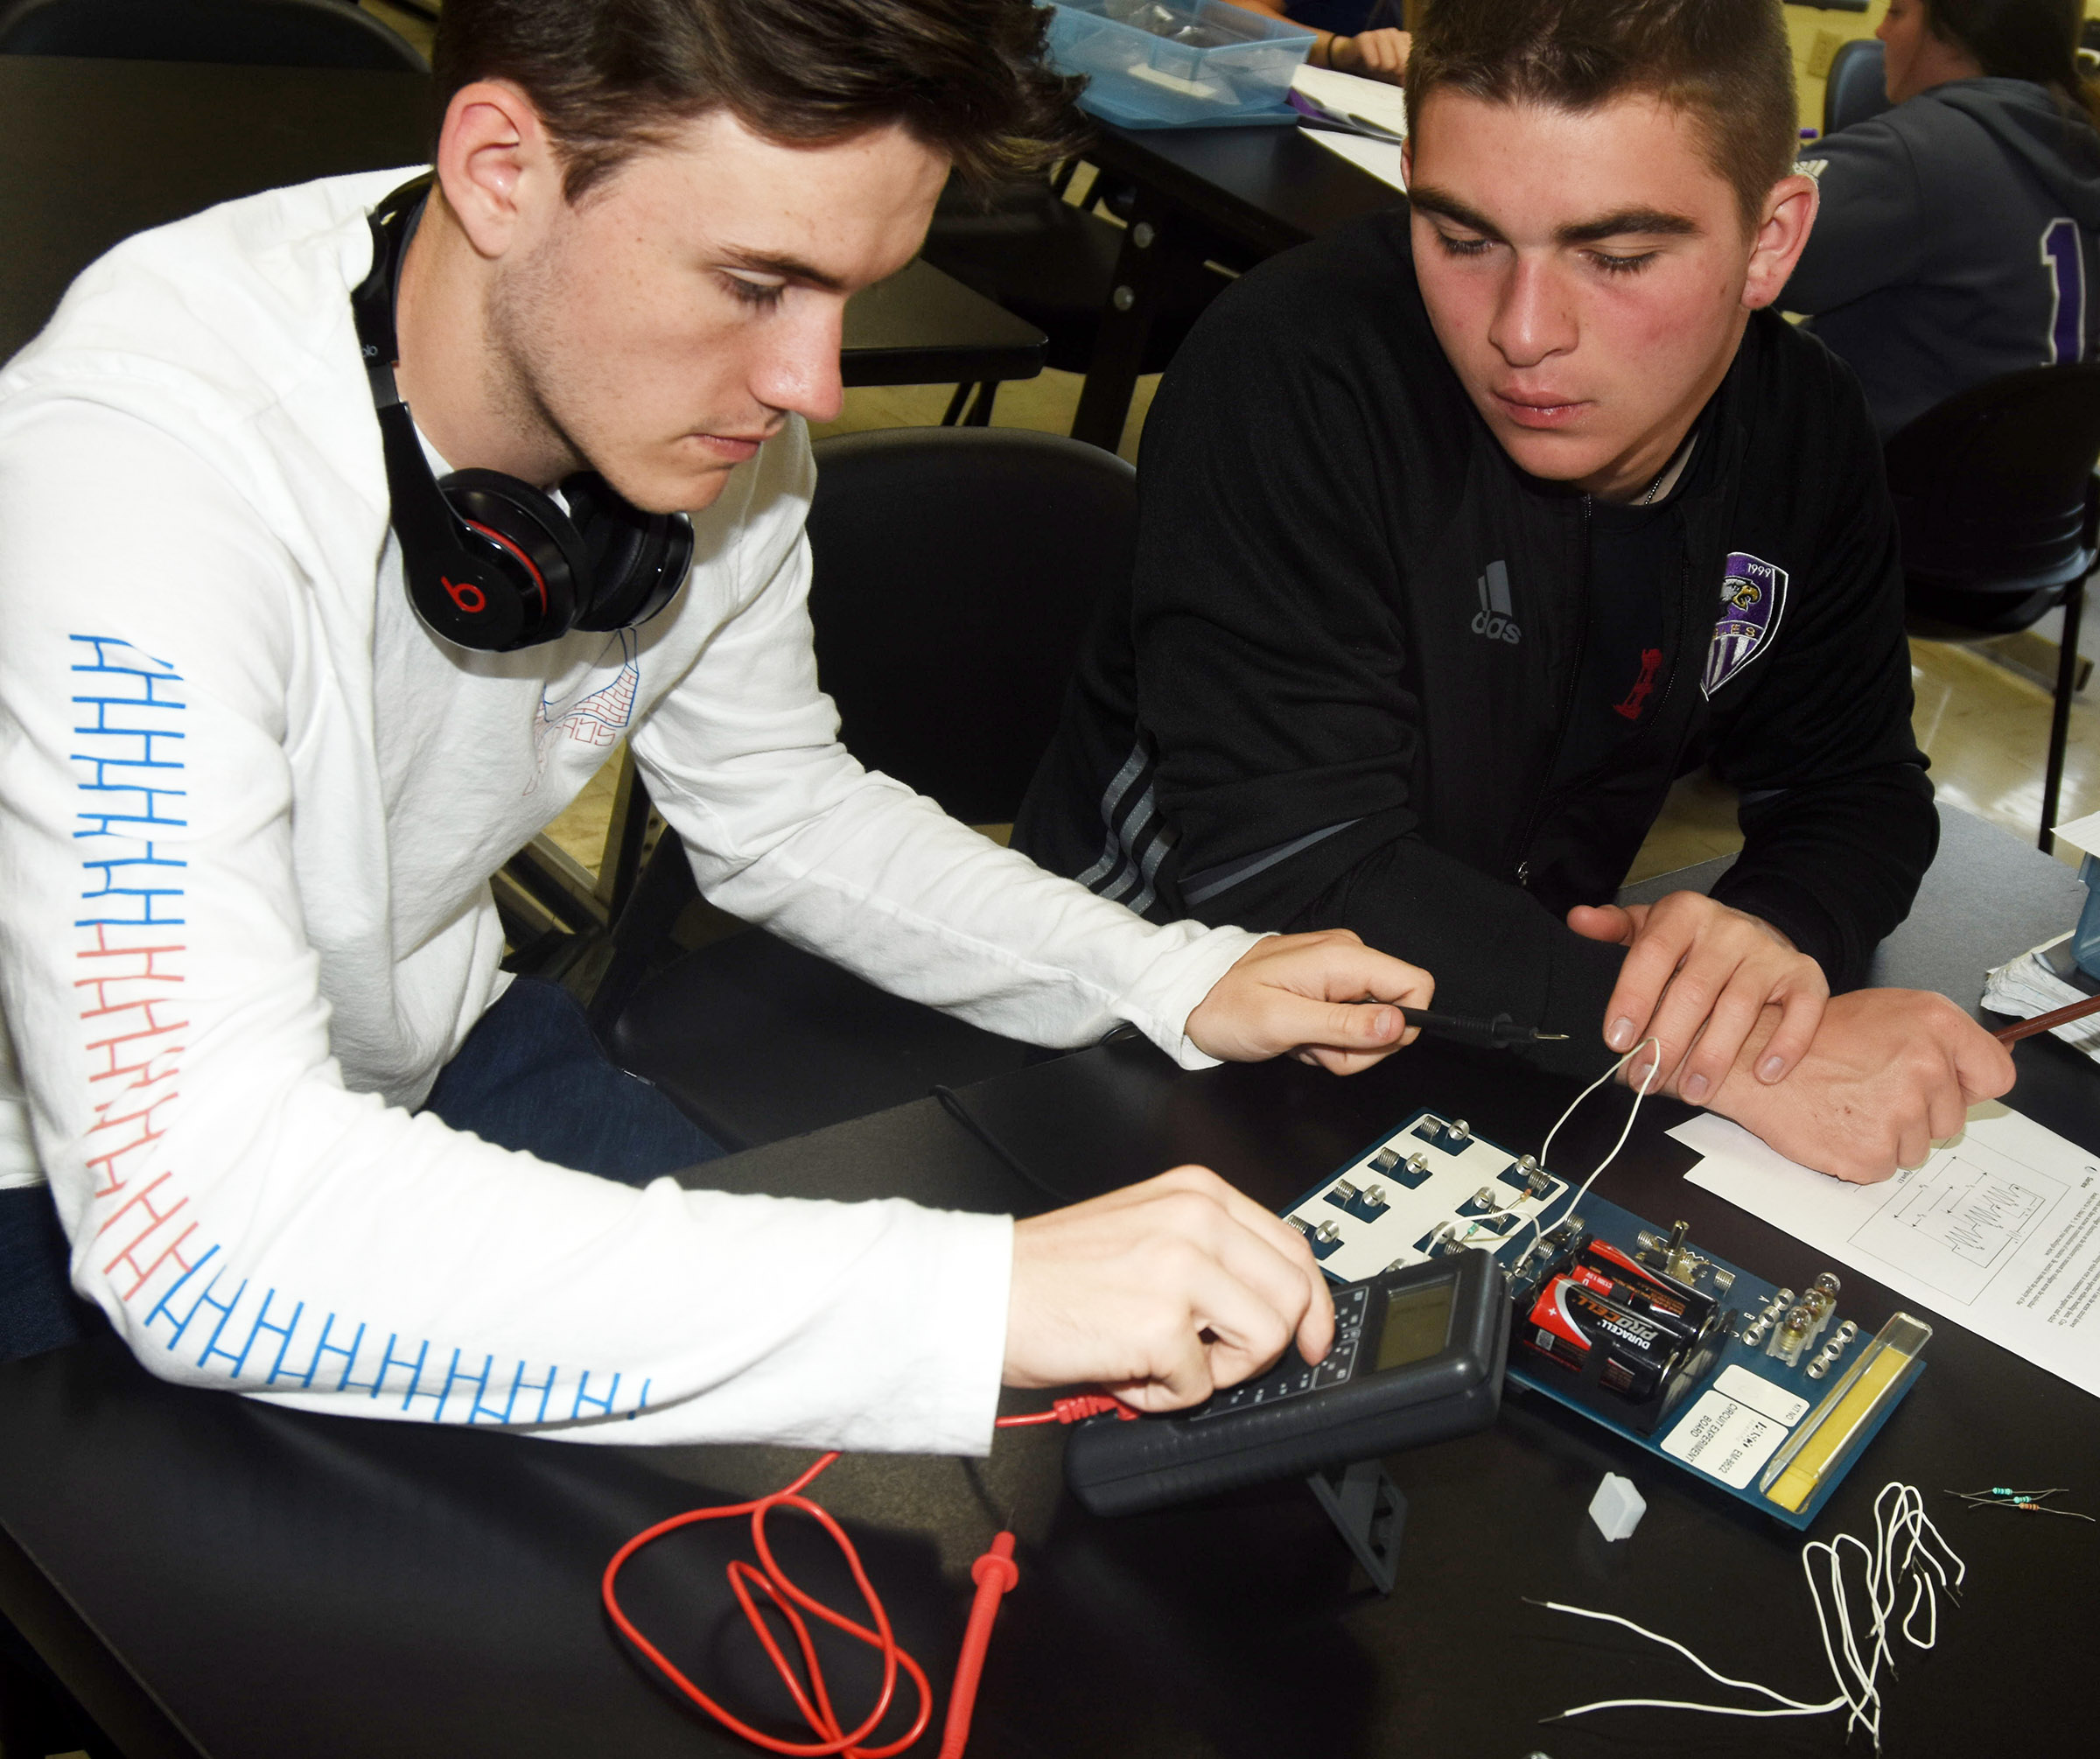 CHS seniors Jackson Hunt, at left, and Cass Kidwell work on their electricity lab exercise.